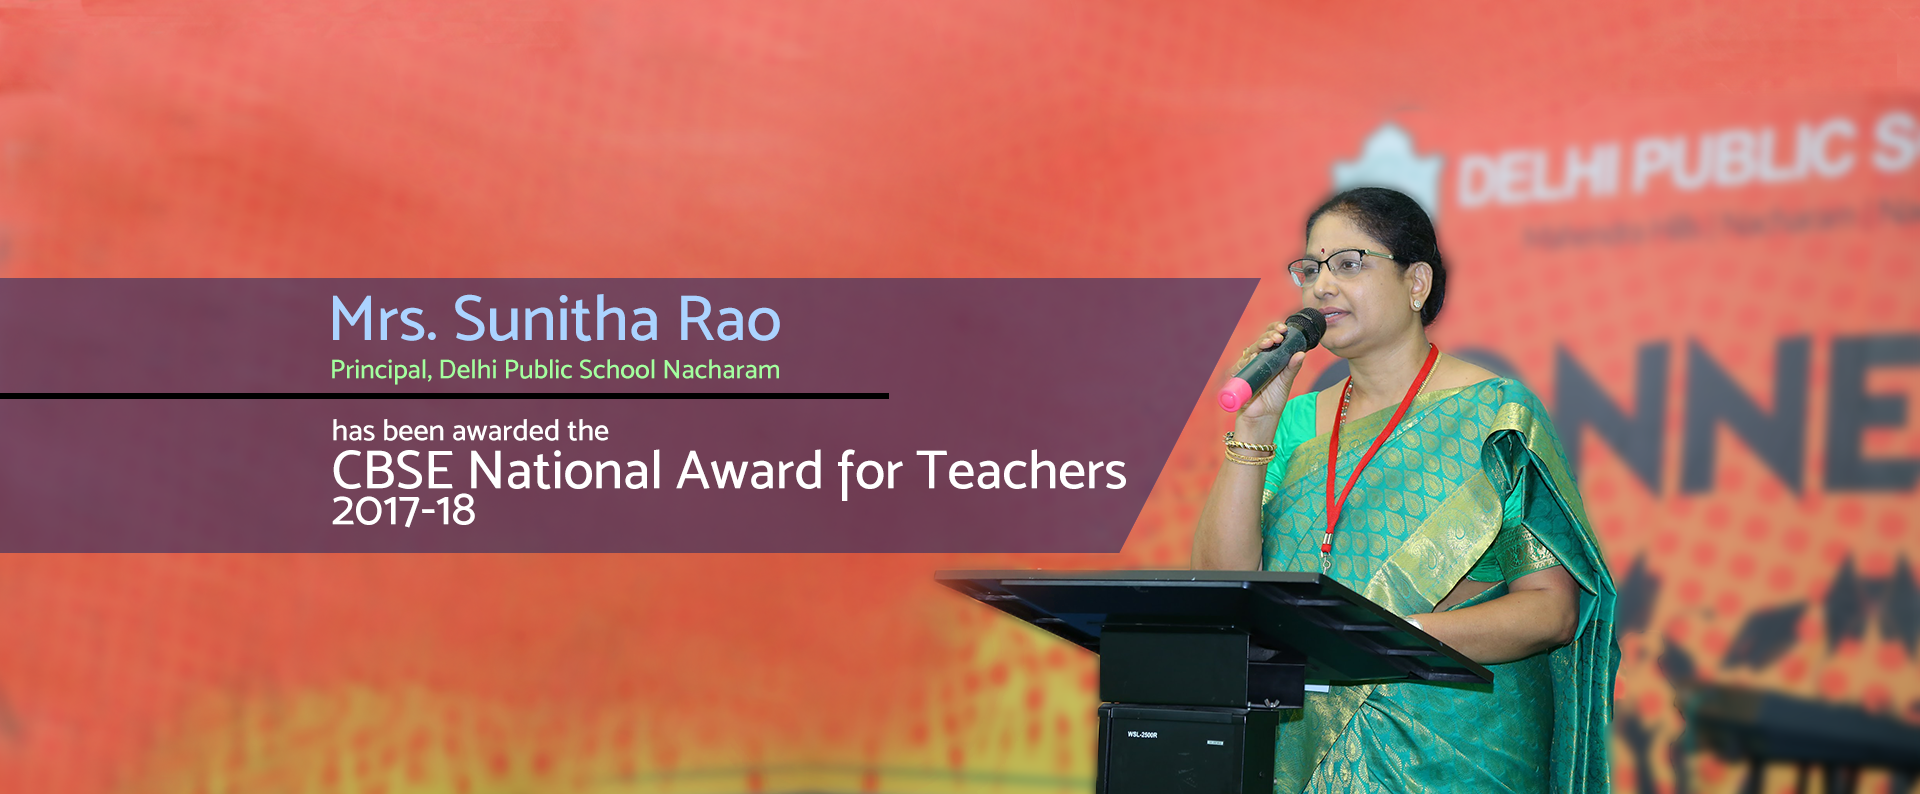 cbse national award for teachers